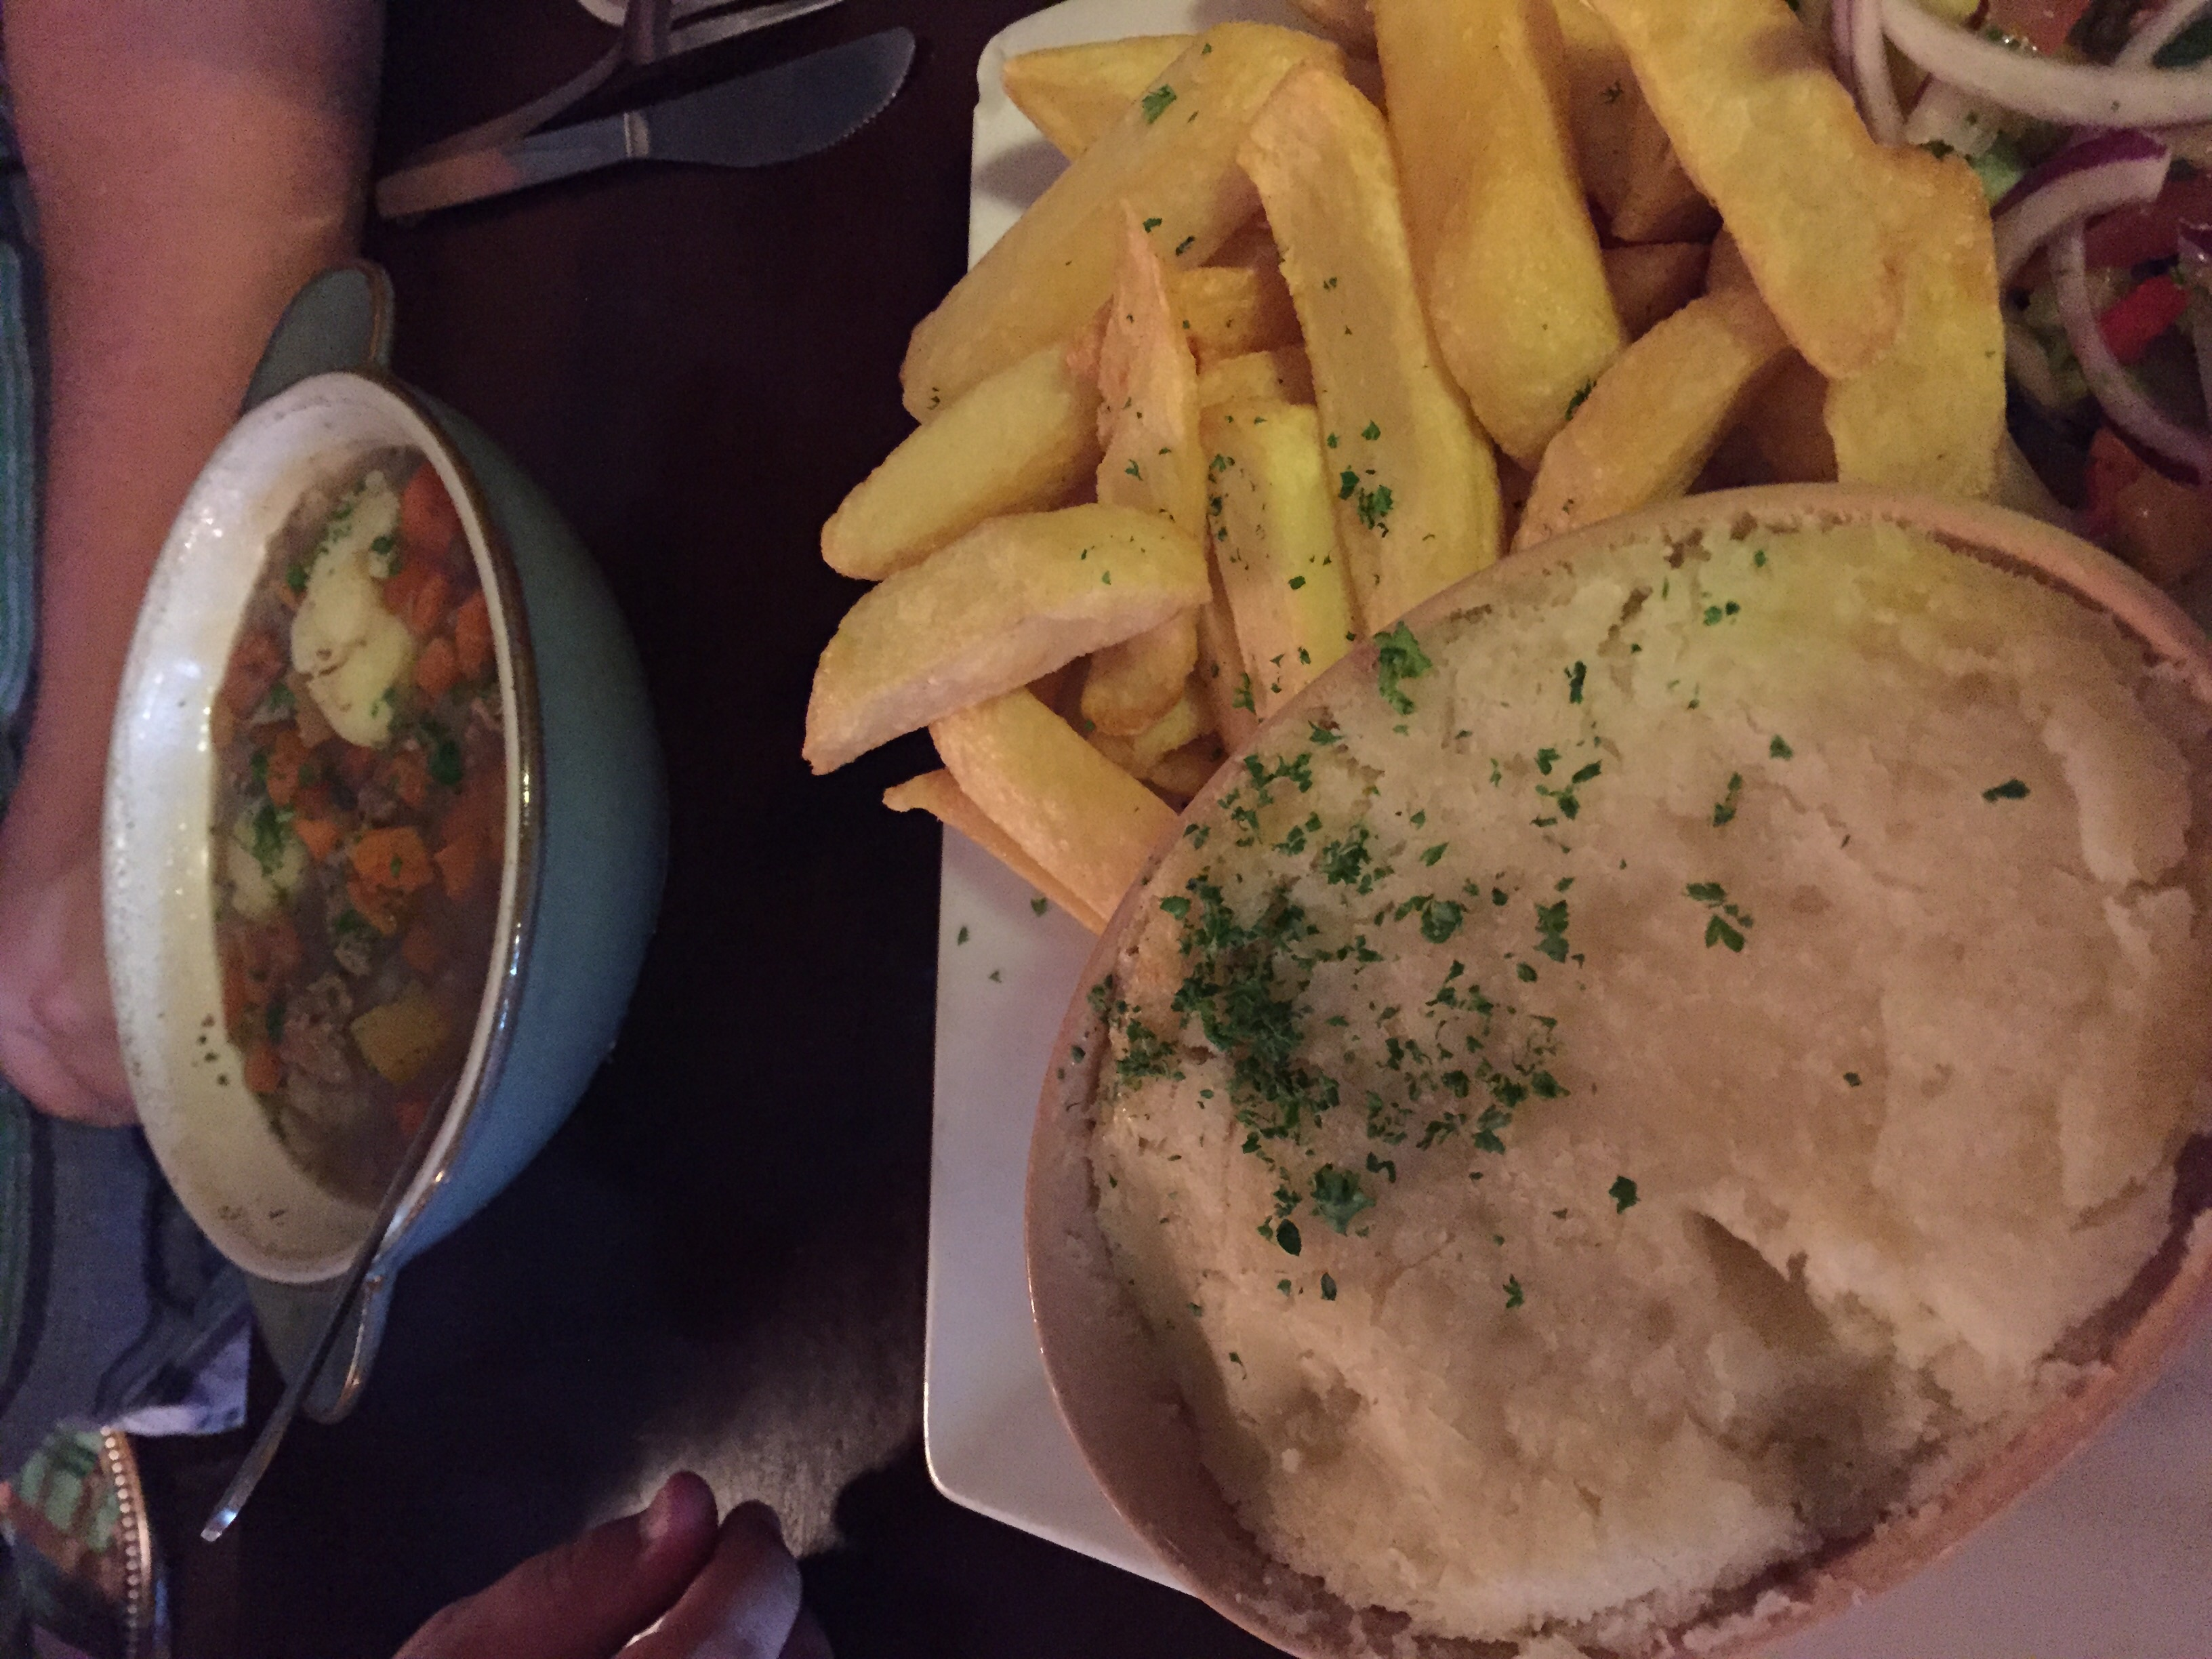 Shepherd's Pie with chips(of course), and Matt's Irish Stew in the back.